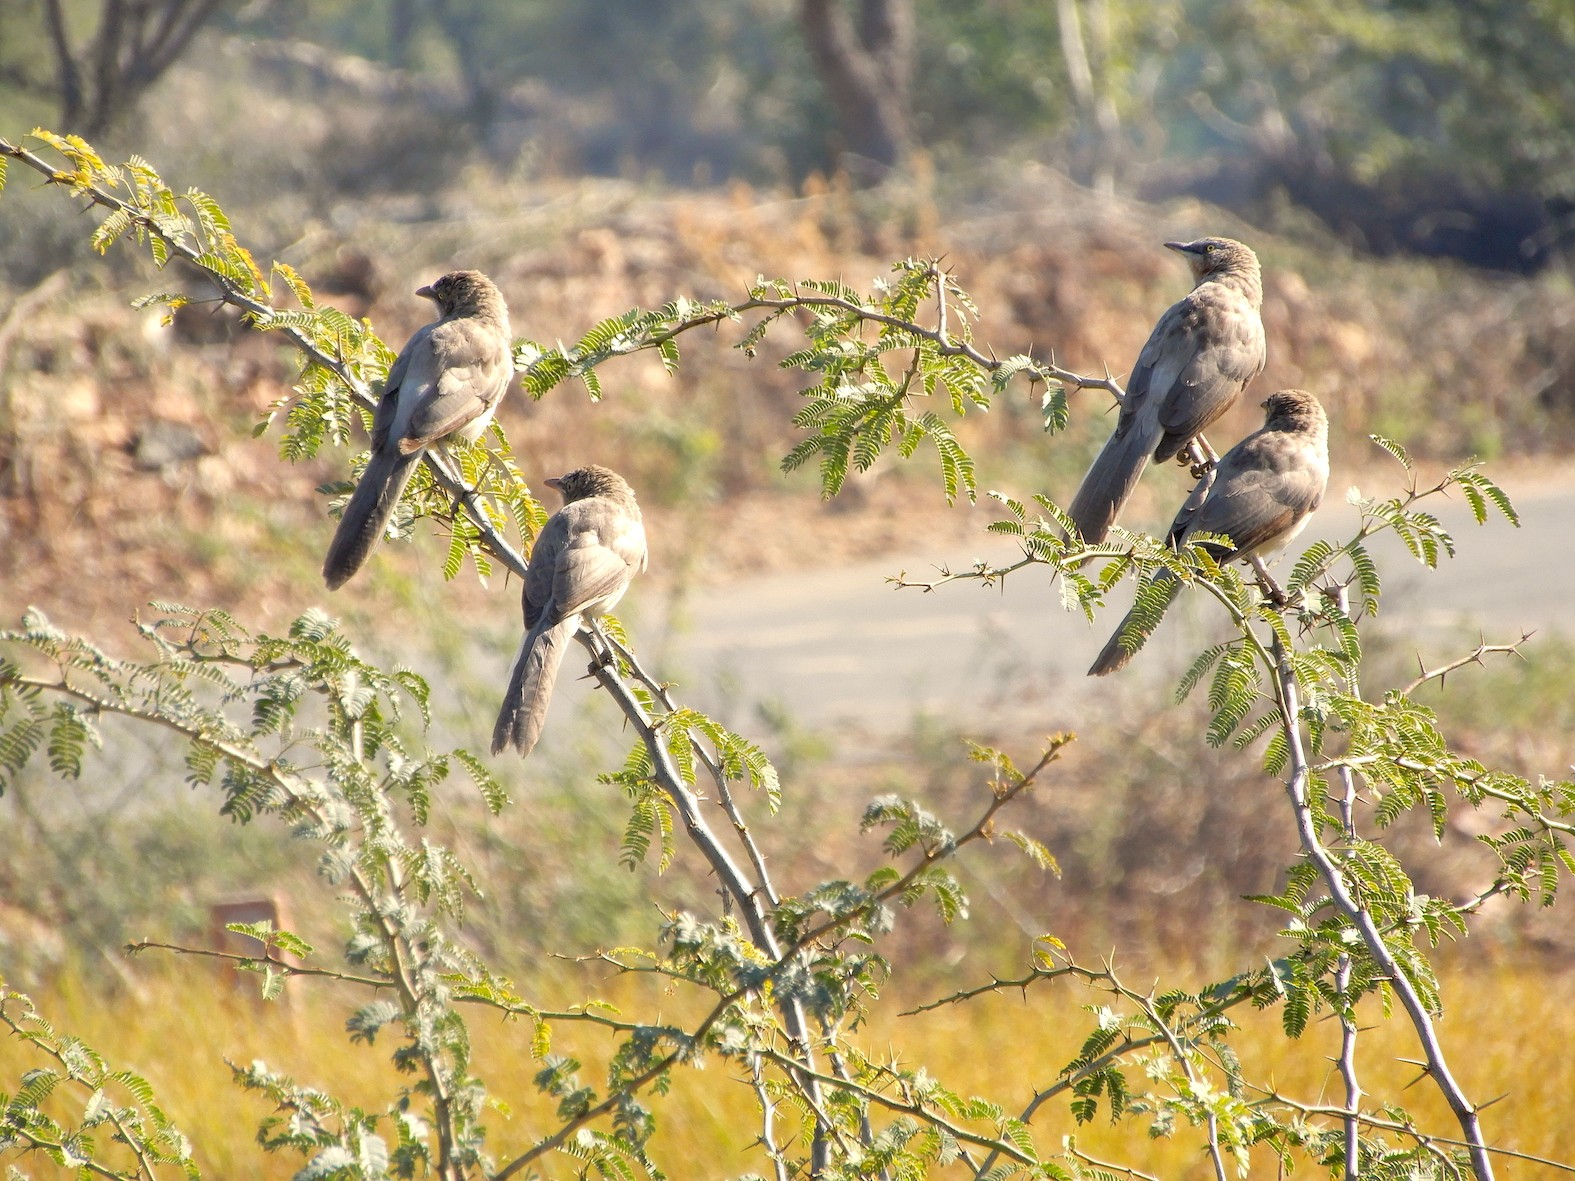 Small flocks of large grey babblers (top) can be seen in open country. These extremely noisy, gregarious birds forage close to the ground. Photo: Anirudh Nair